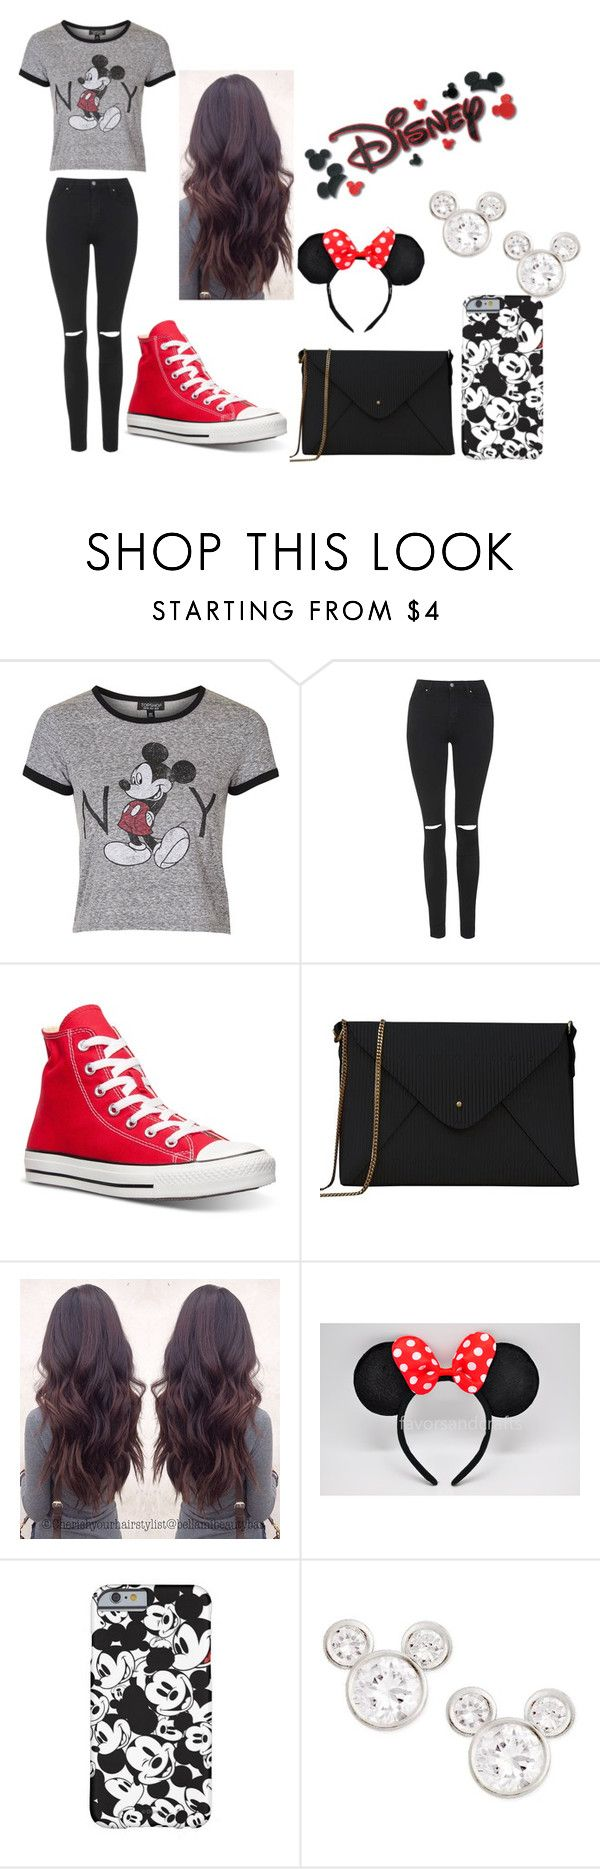 """Edgy Disney Outfit"" by victoria1221 ❤ liked on Polyvore featuring moda, Topshop, Converse, Lizzy Disney i Disney"